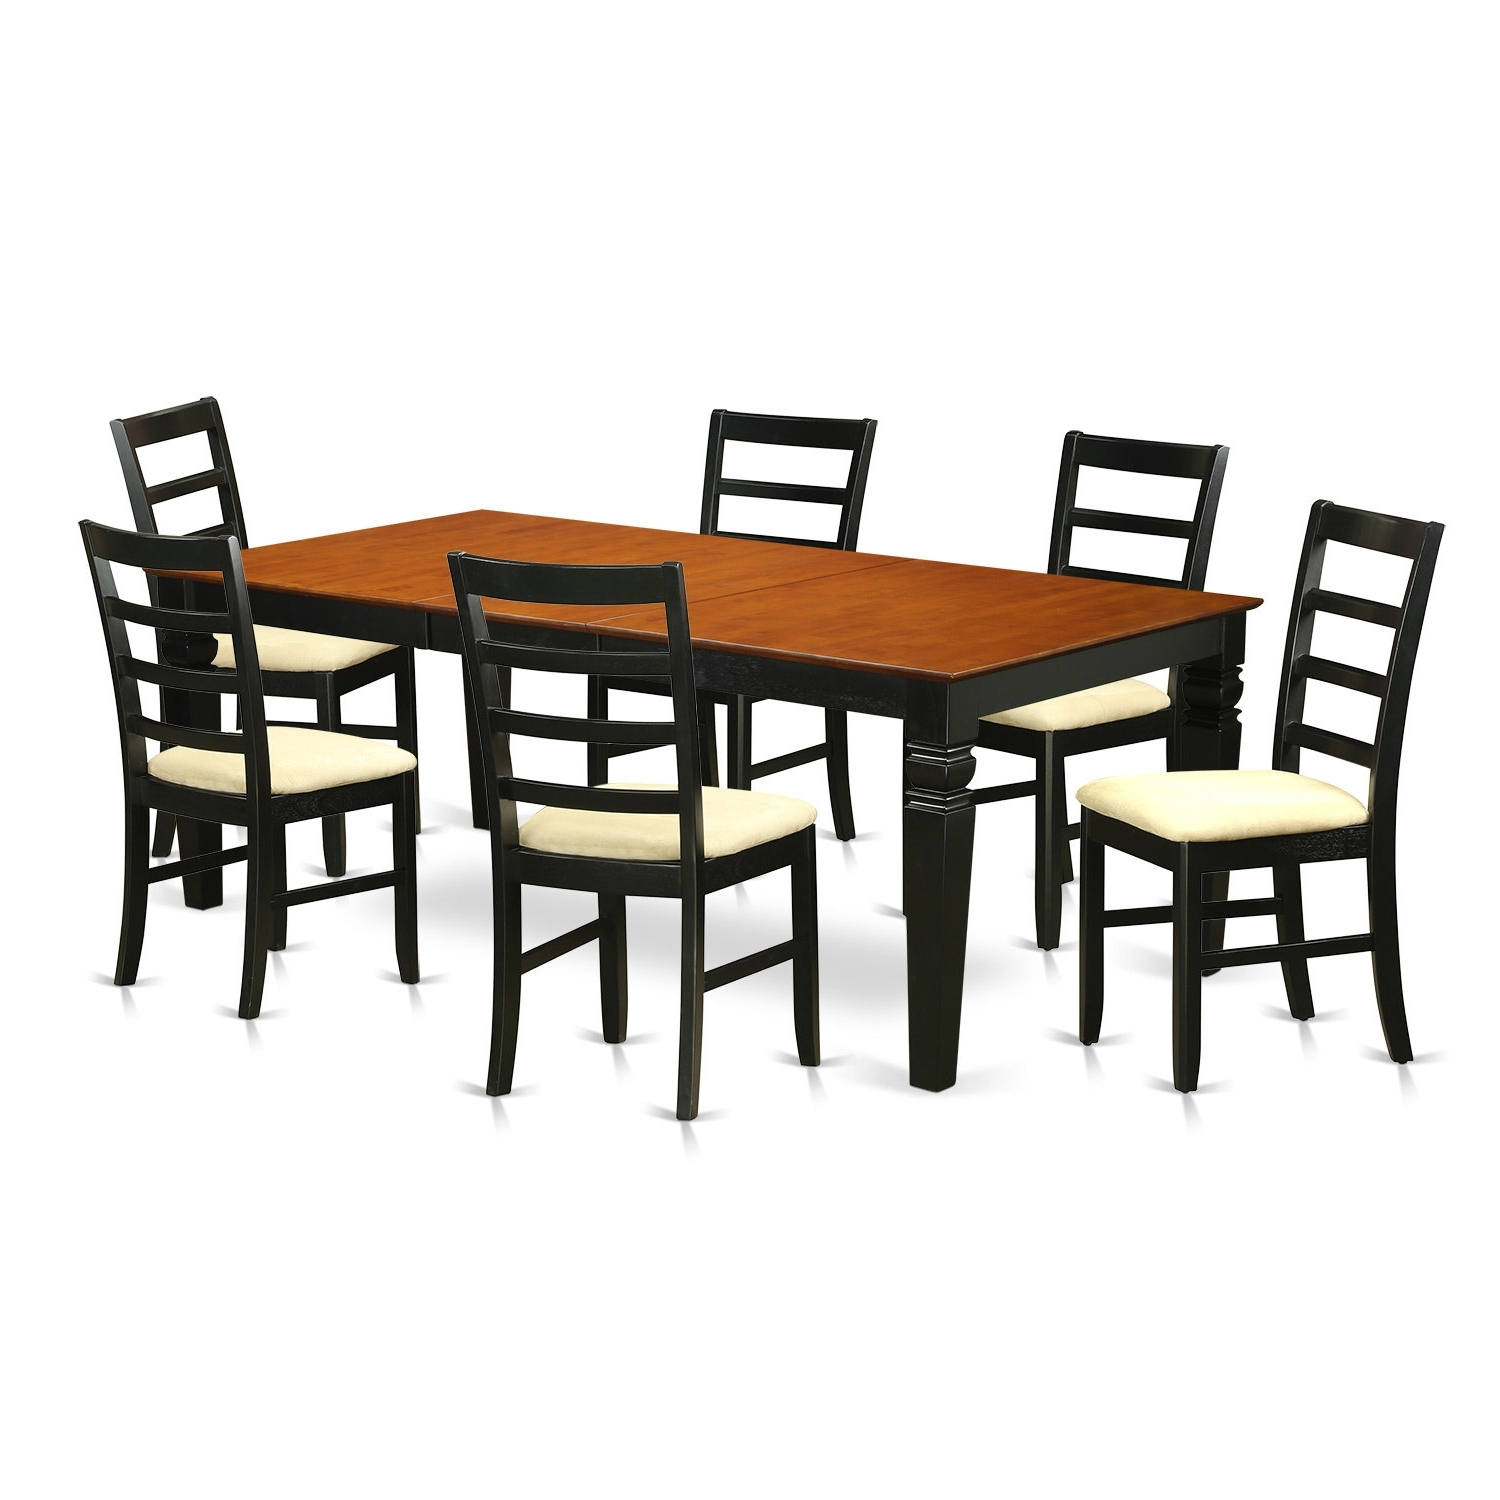 Wayfair With Regard To Most Up To Date Chandler 7 Piece Extension Dining Sets With Wood Side Chairs (View 23 of 25)